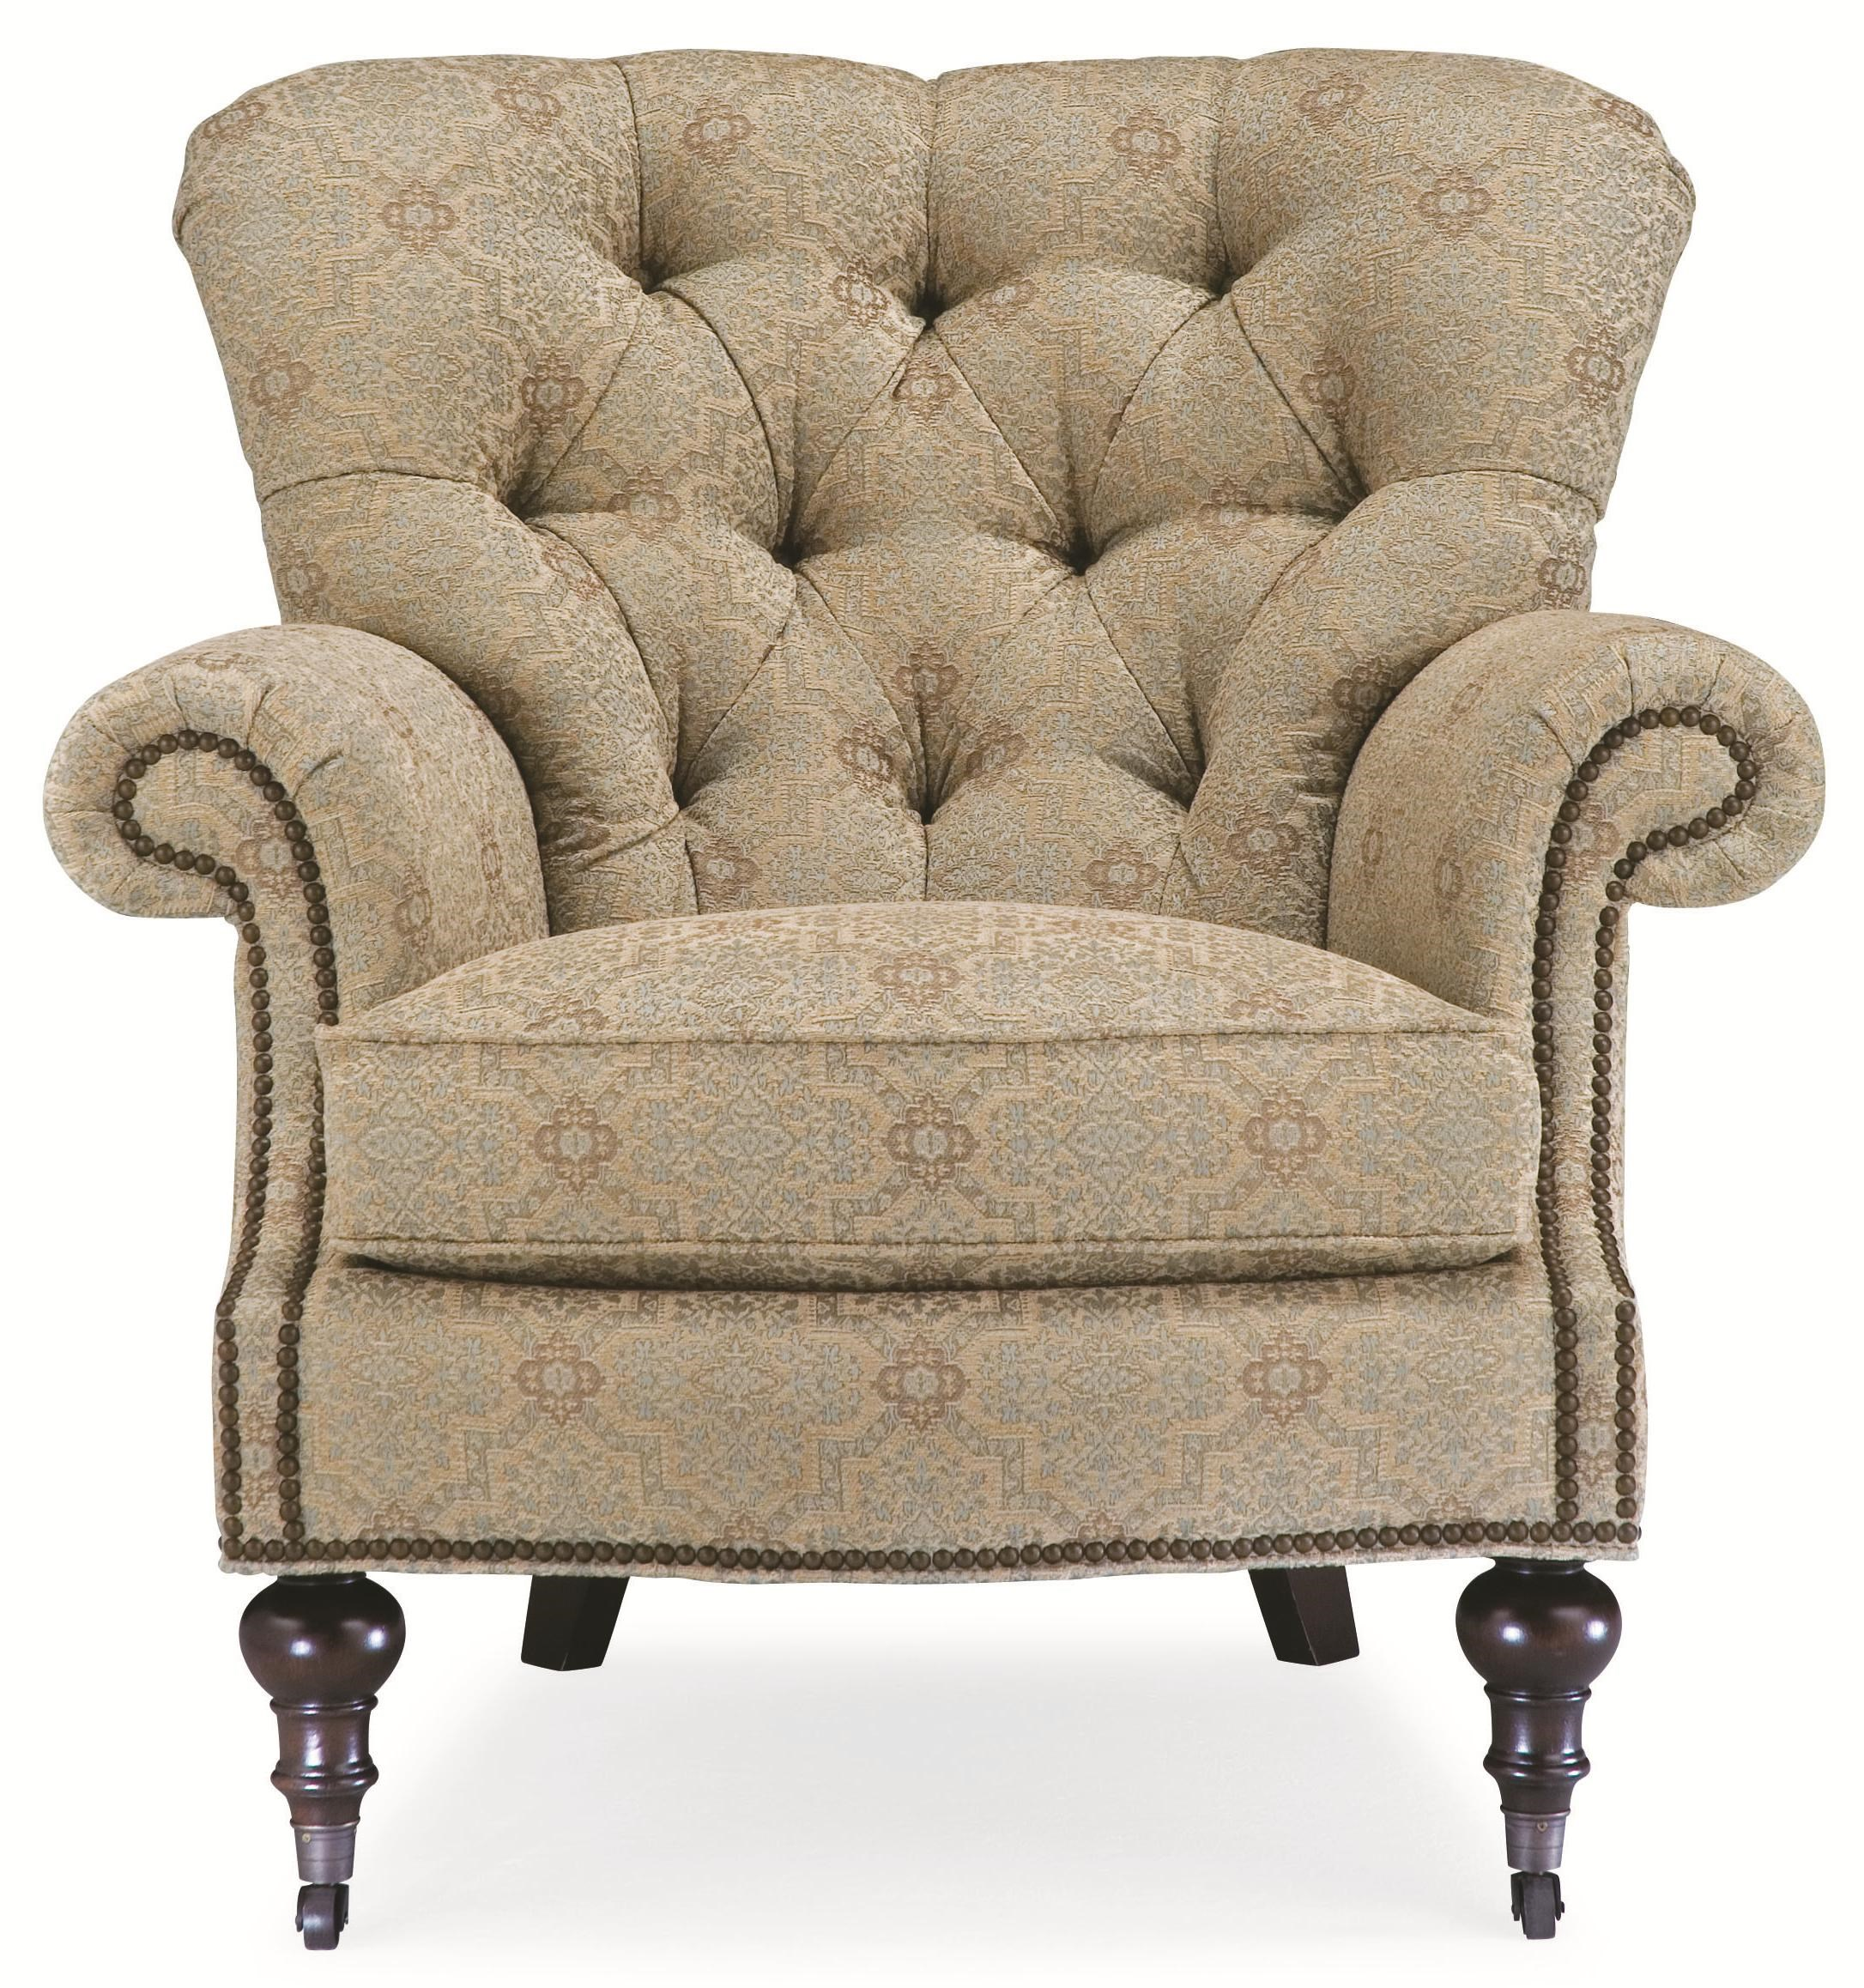 ... Thomasville® Upholstered Chairs And OttomansVienna Tufted Back Chair ...